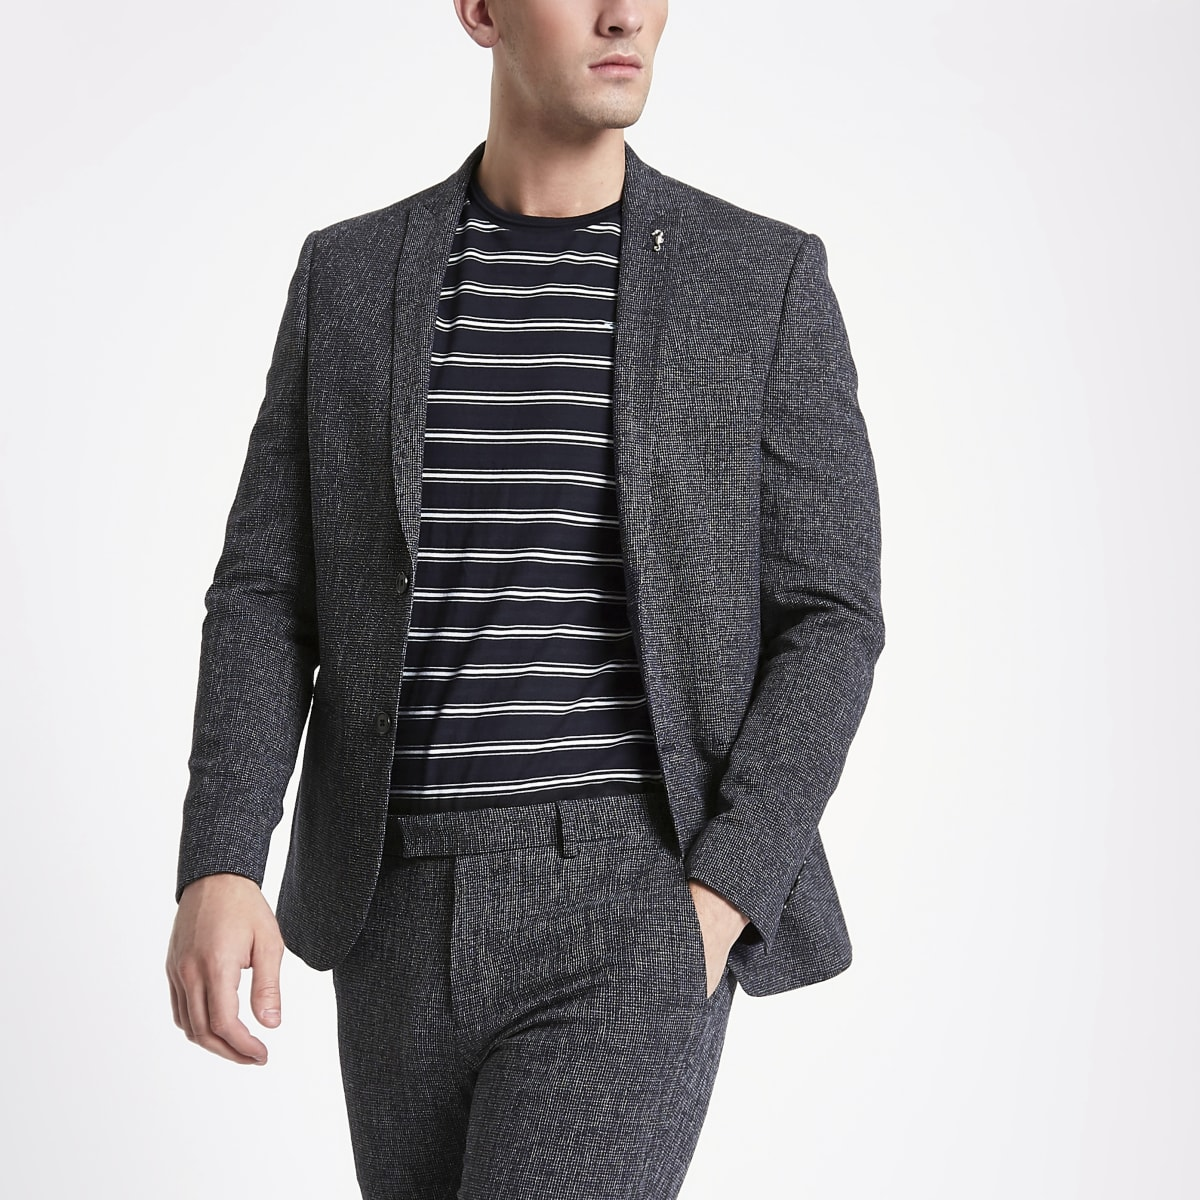 Dark blue peak lapel skinny suit jacket